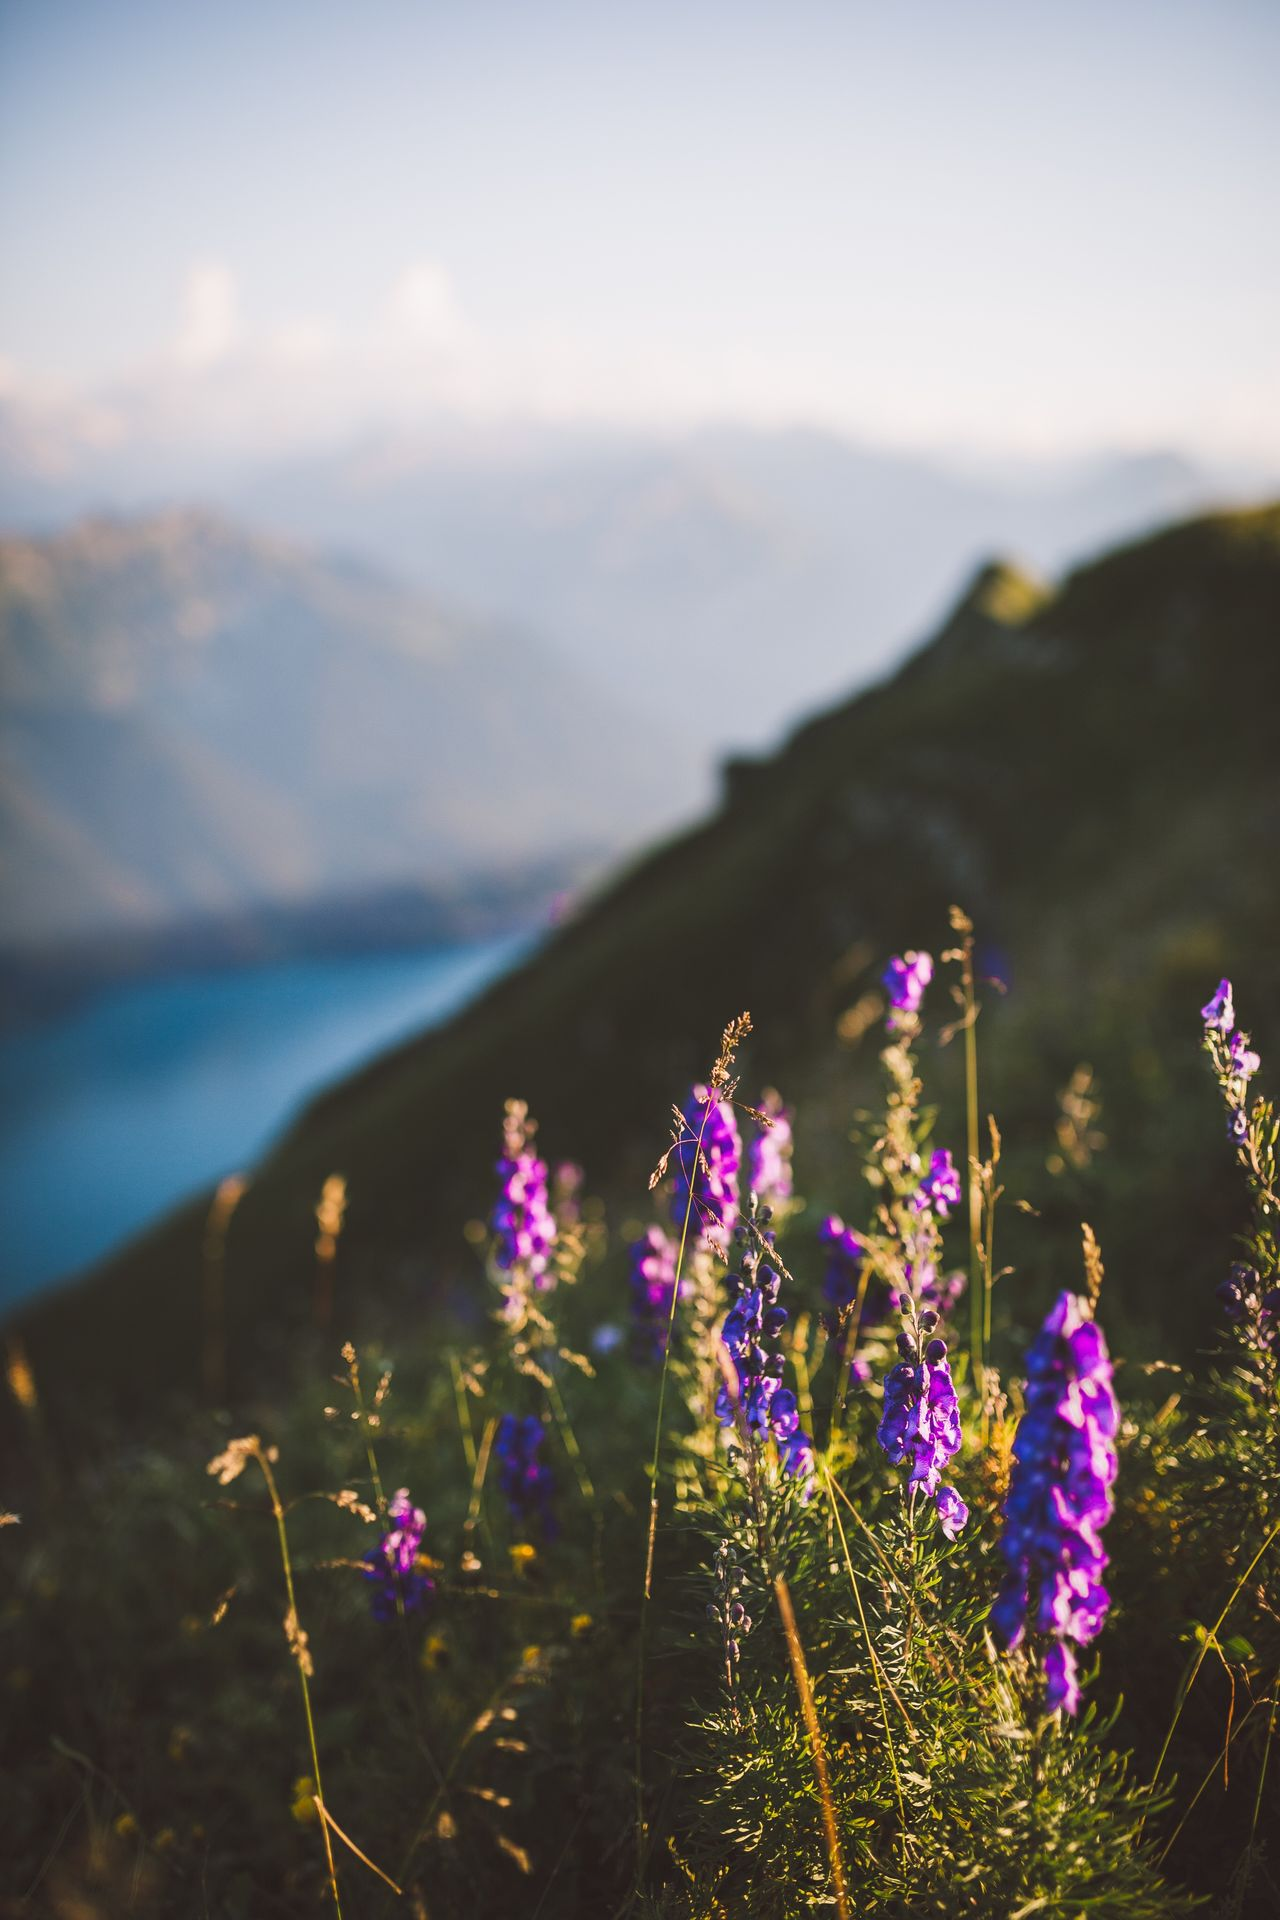 Summer is calling. Flower Nature Growth Beauty In Nature Field Plant Purple Focus On Foreground Mountain Outdoors Day Scenics Tranquility Freshness No People Landscape Sky Fragility Close-up Grass Switzerland